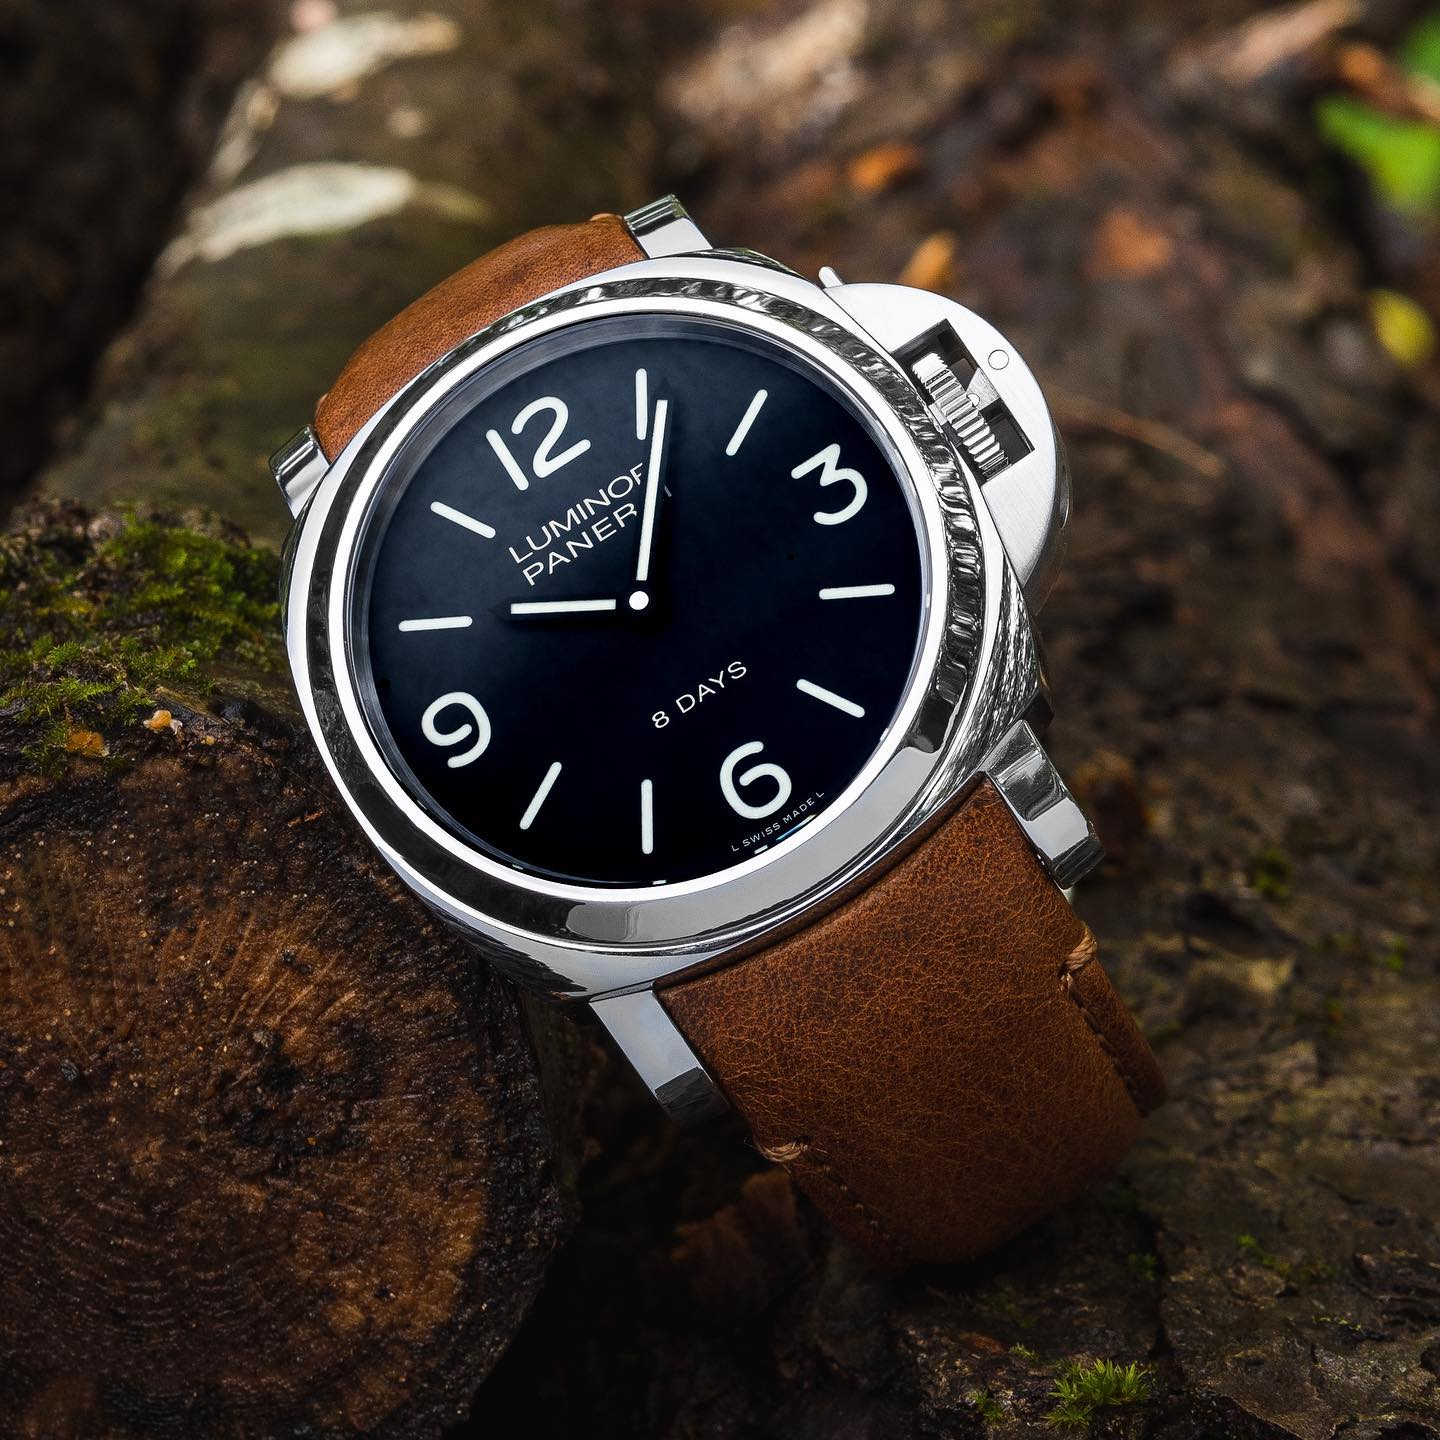 panerai on curved end tan leather strap